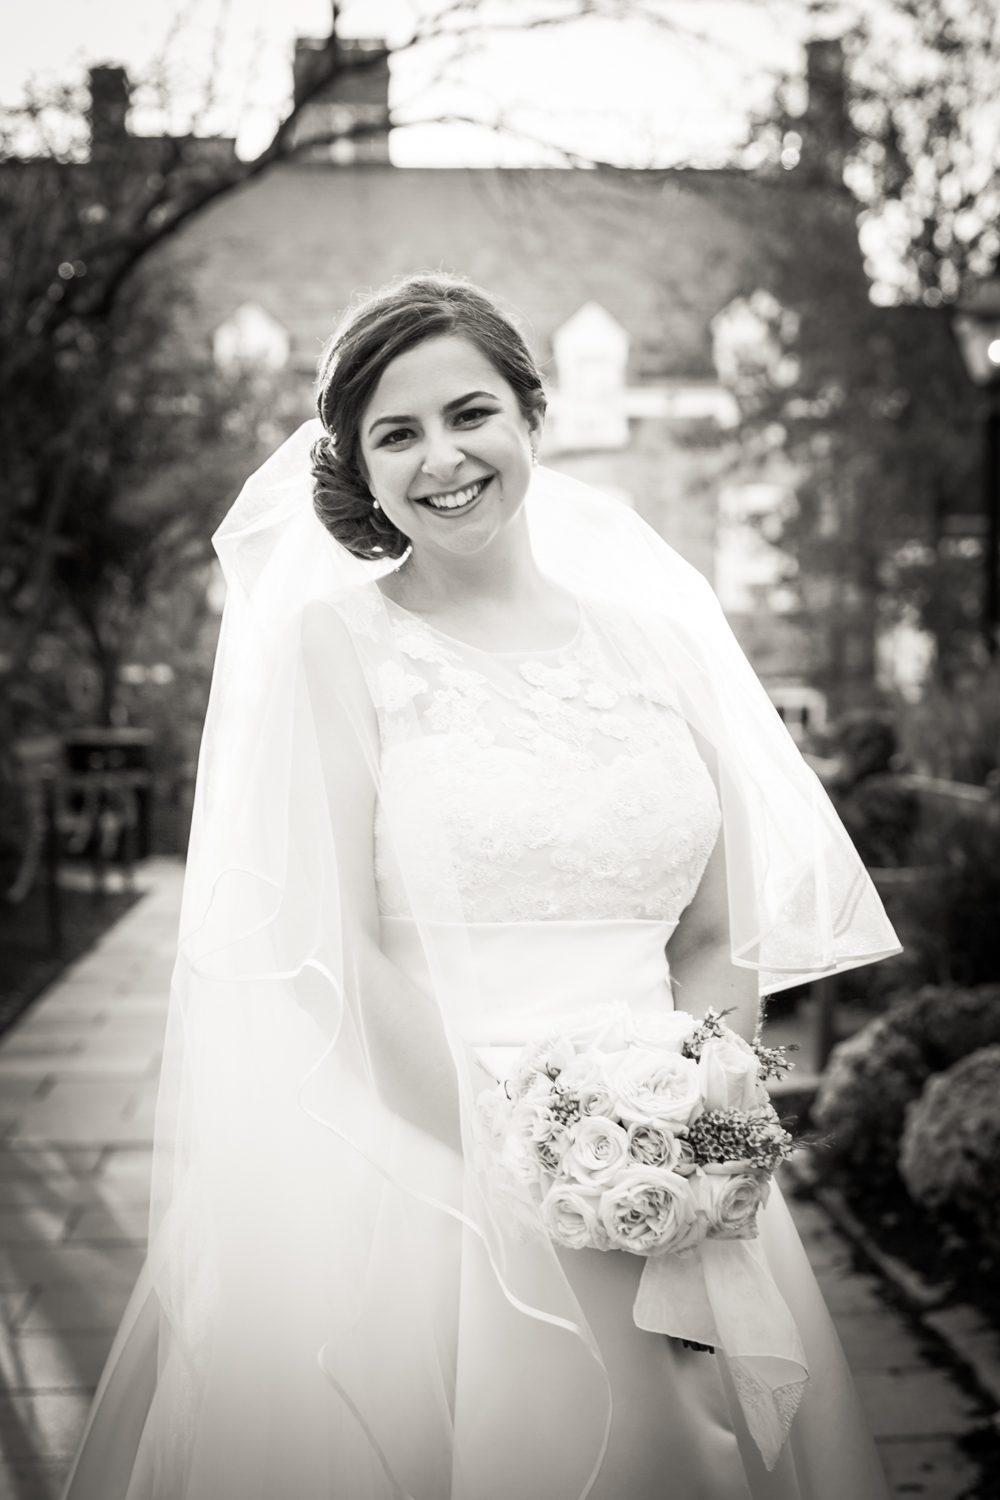 Black and white portrait of bride outdoors